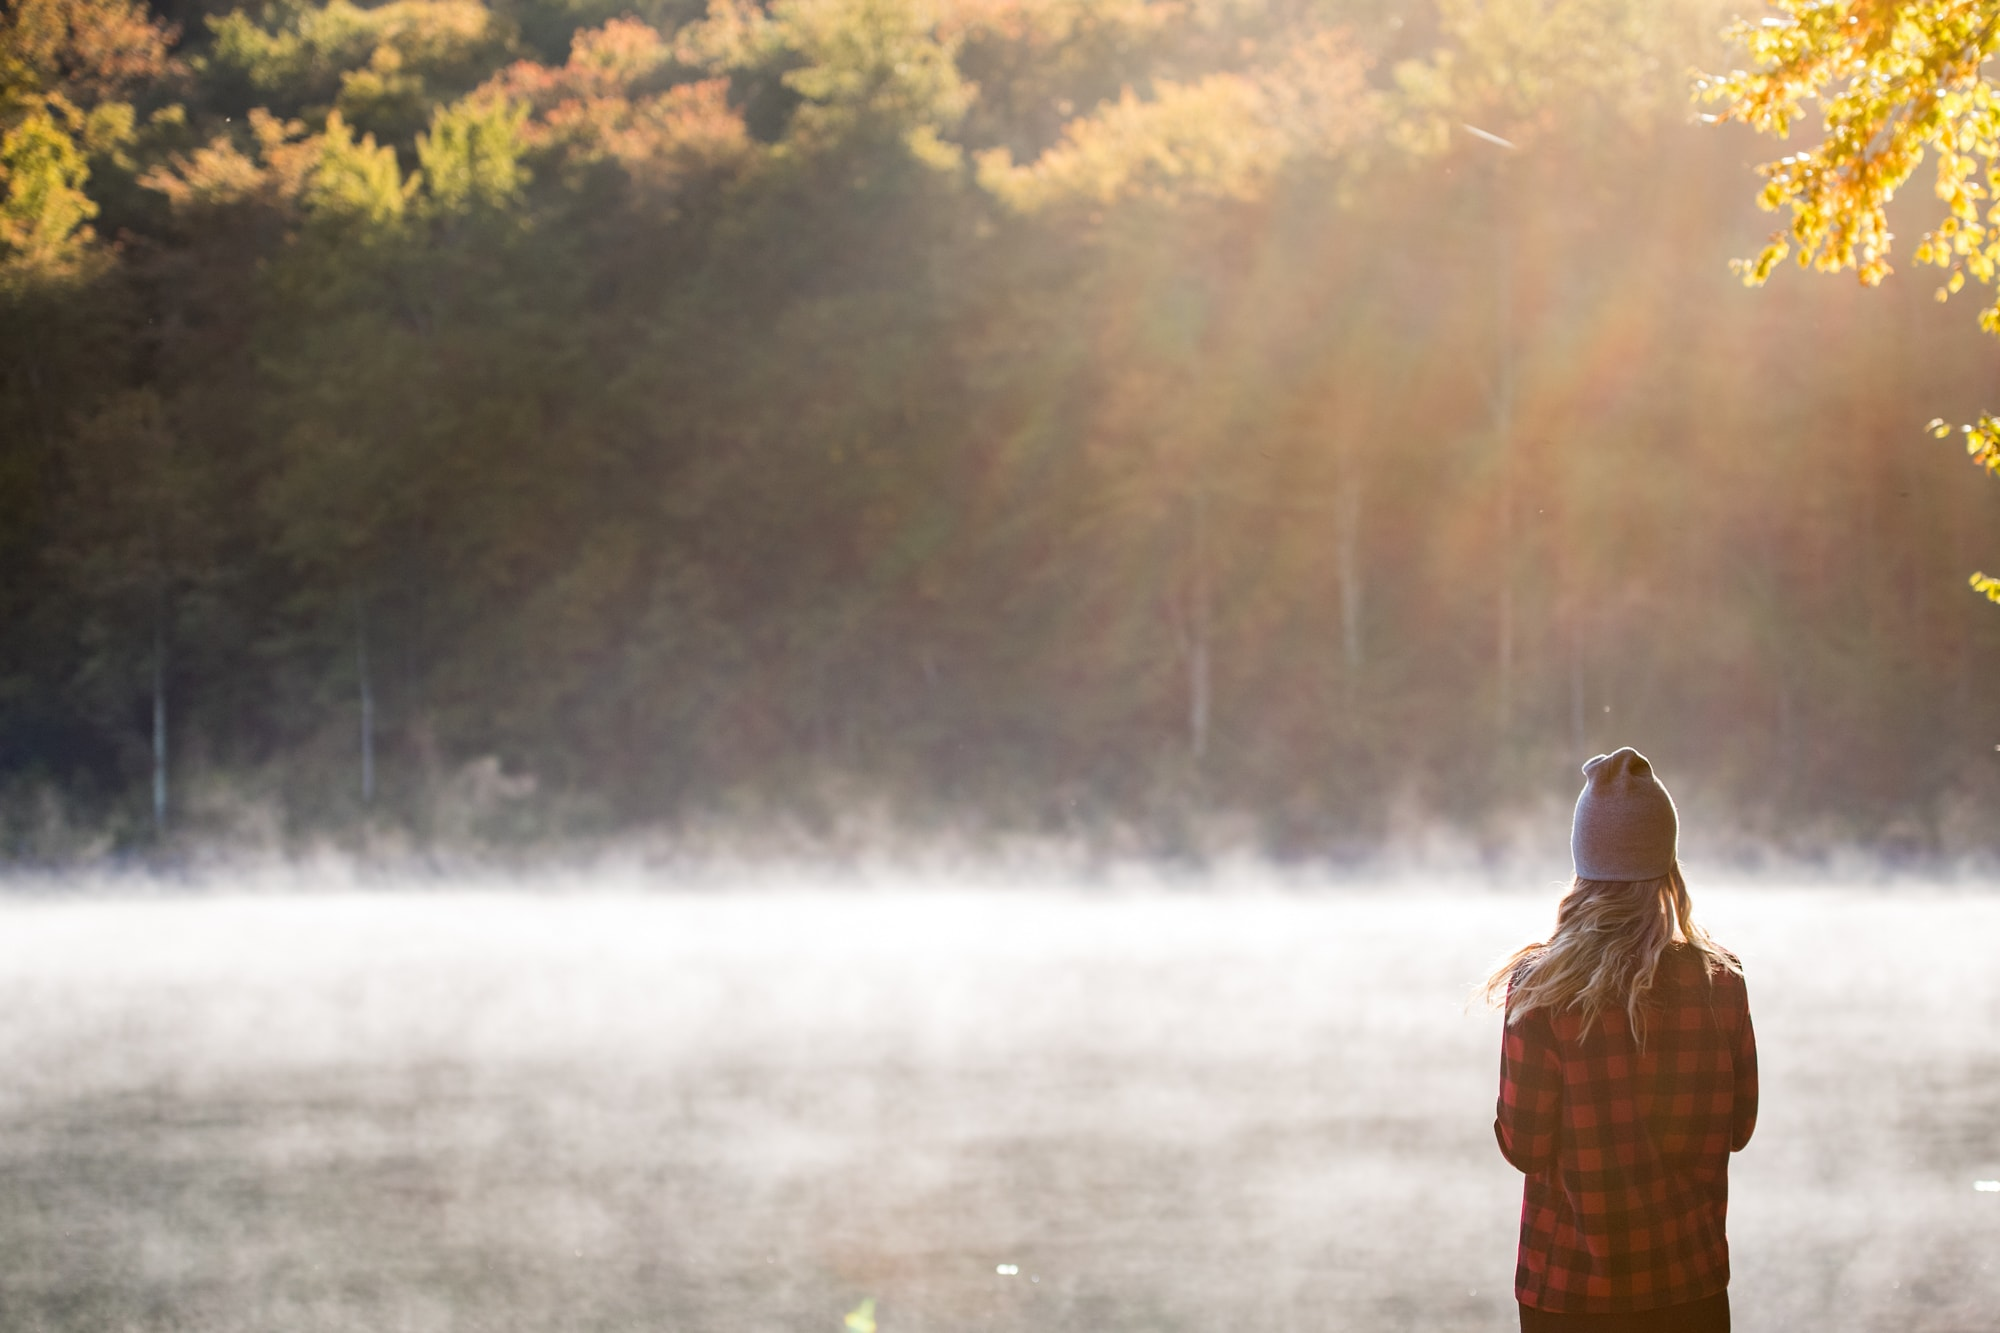 Young Woman Looks Into The Sun And Fog